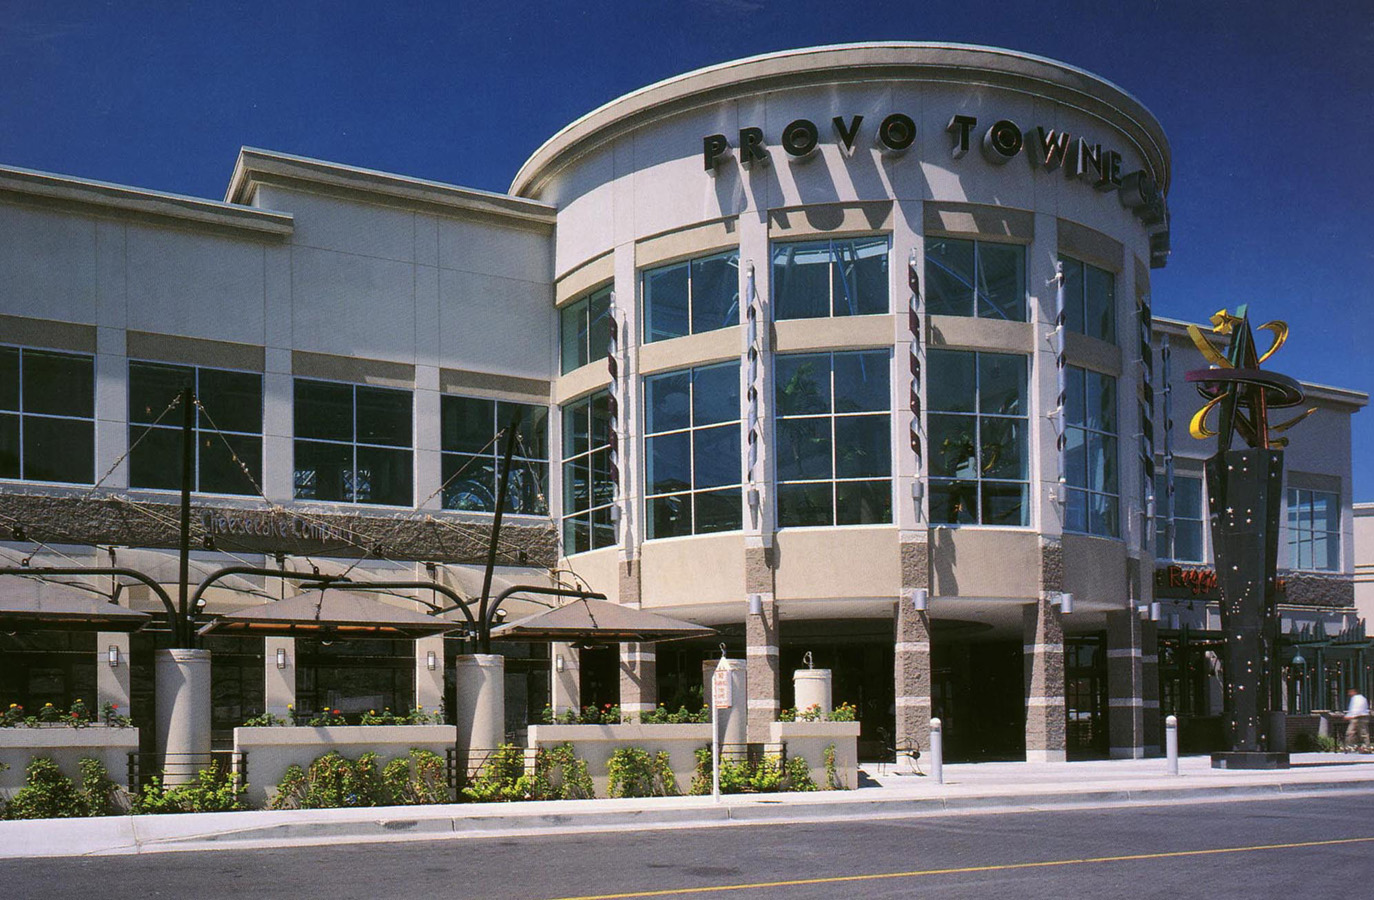 The Utah Valley Convention Center is located on Freedom Blvd ( West) in between Center Street and North, just six blocks north of the FrontRunner Provo Central Station. Buses are available from Provo Central Station to the Utah Valley Convention Center.